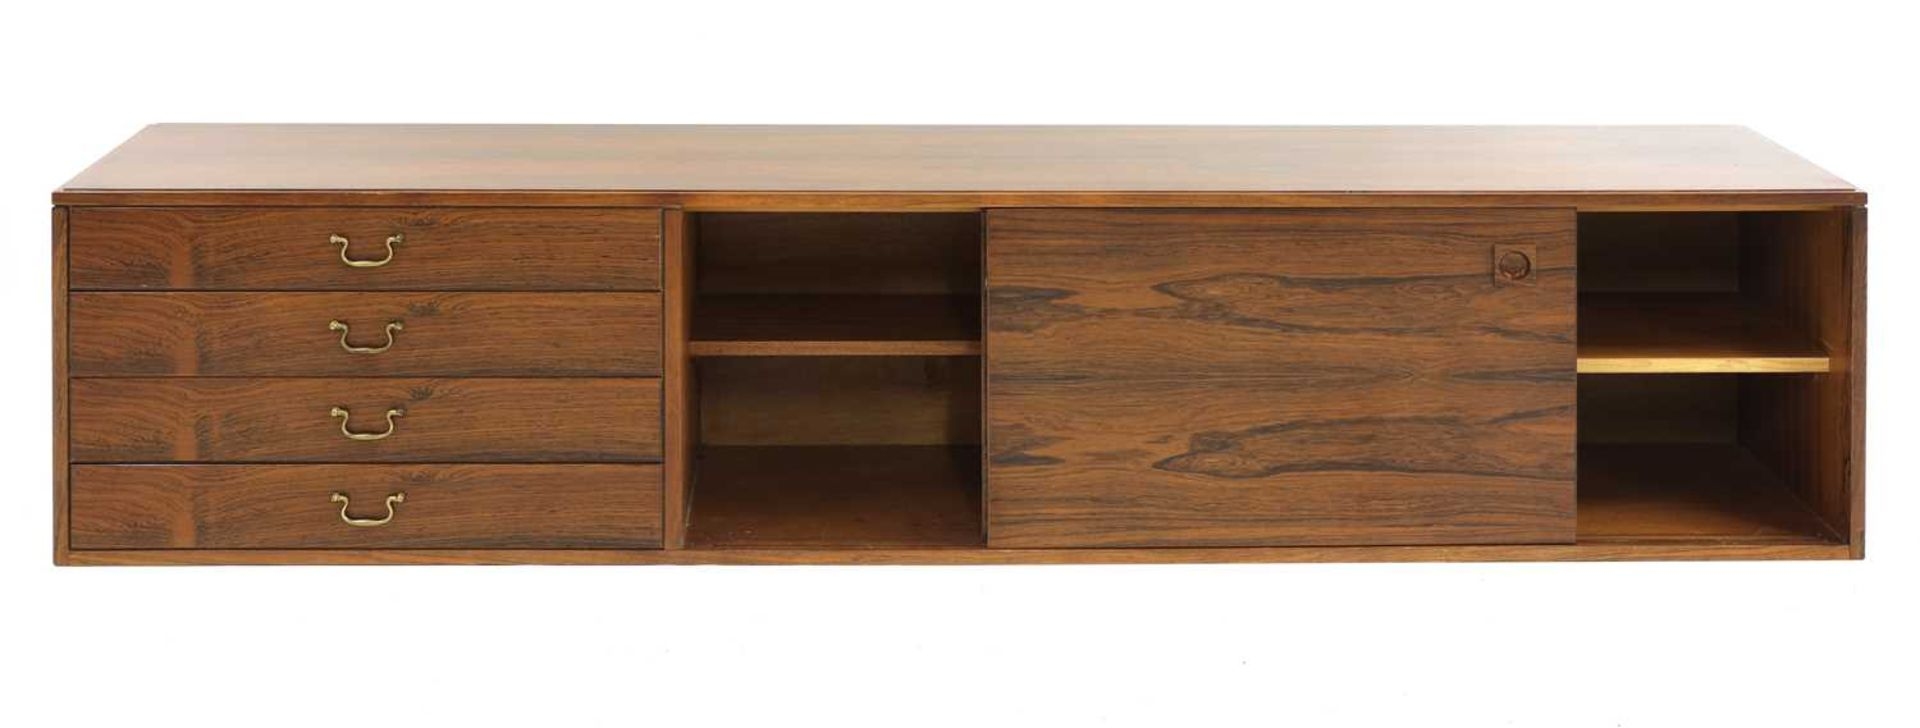 A rosewood wall cabinet, § - Image 3 of 10